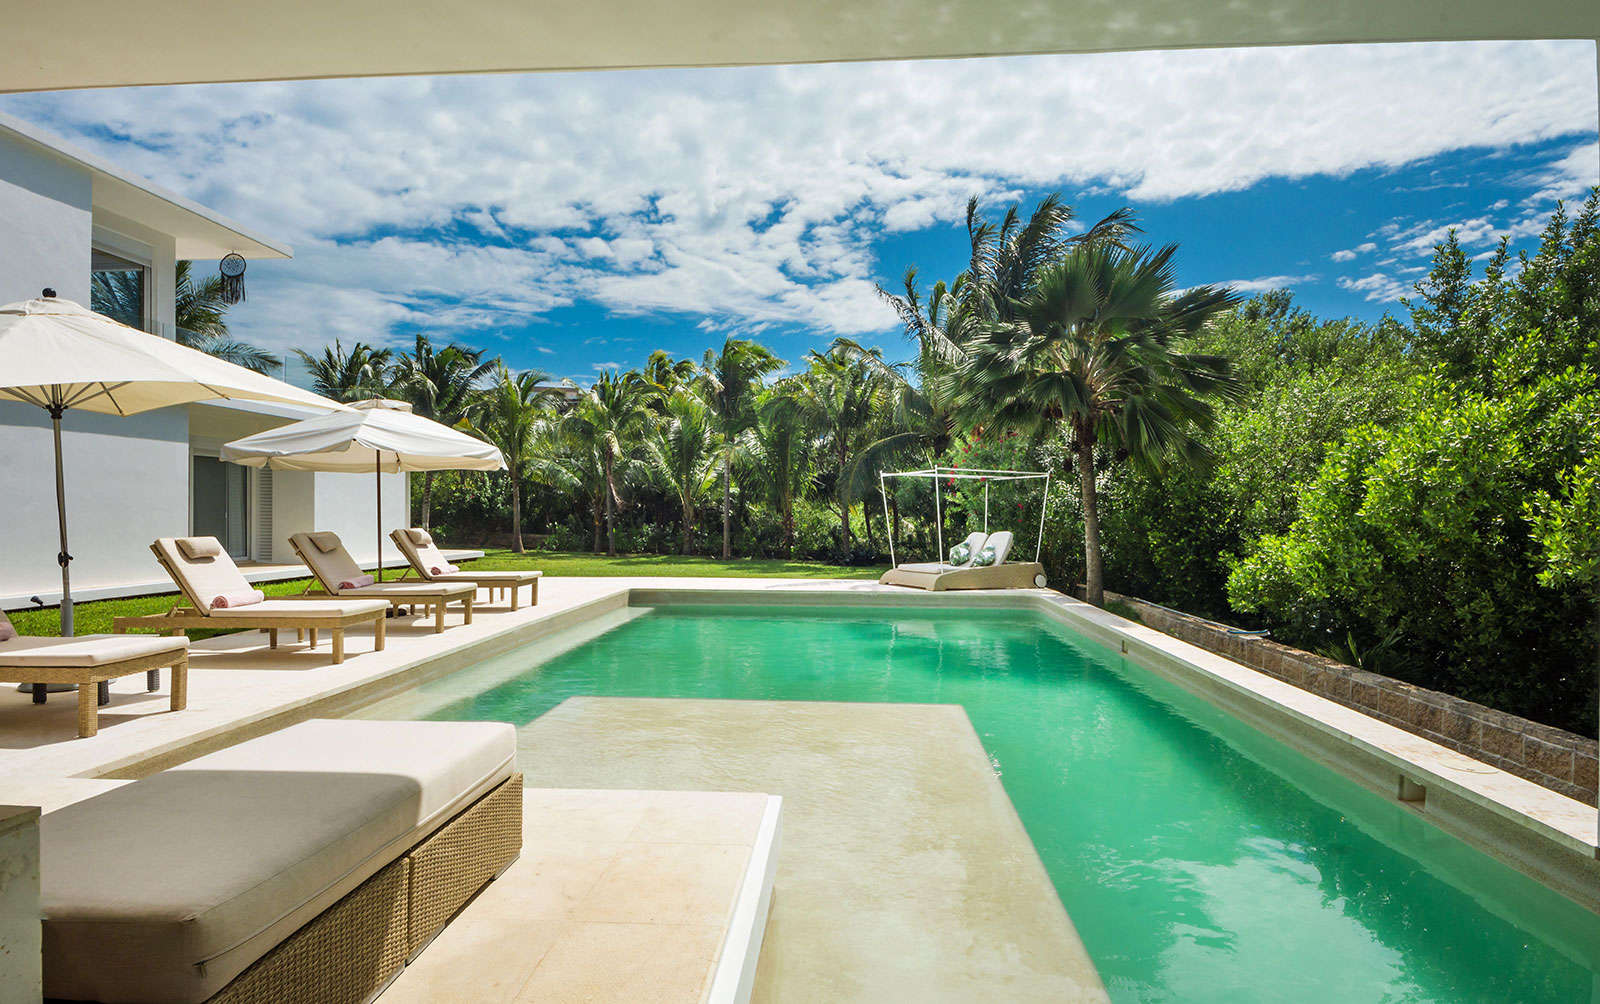 Luxury vacation rentals mexico - Riviera maya - Cancun - Playa mujeres - Casa Marazul - Image 1/34